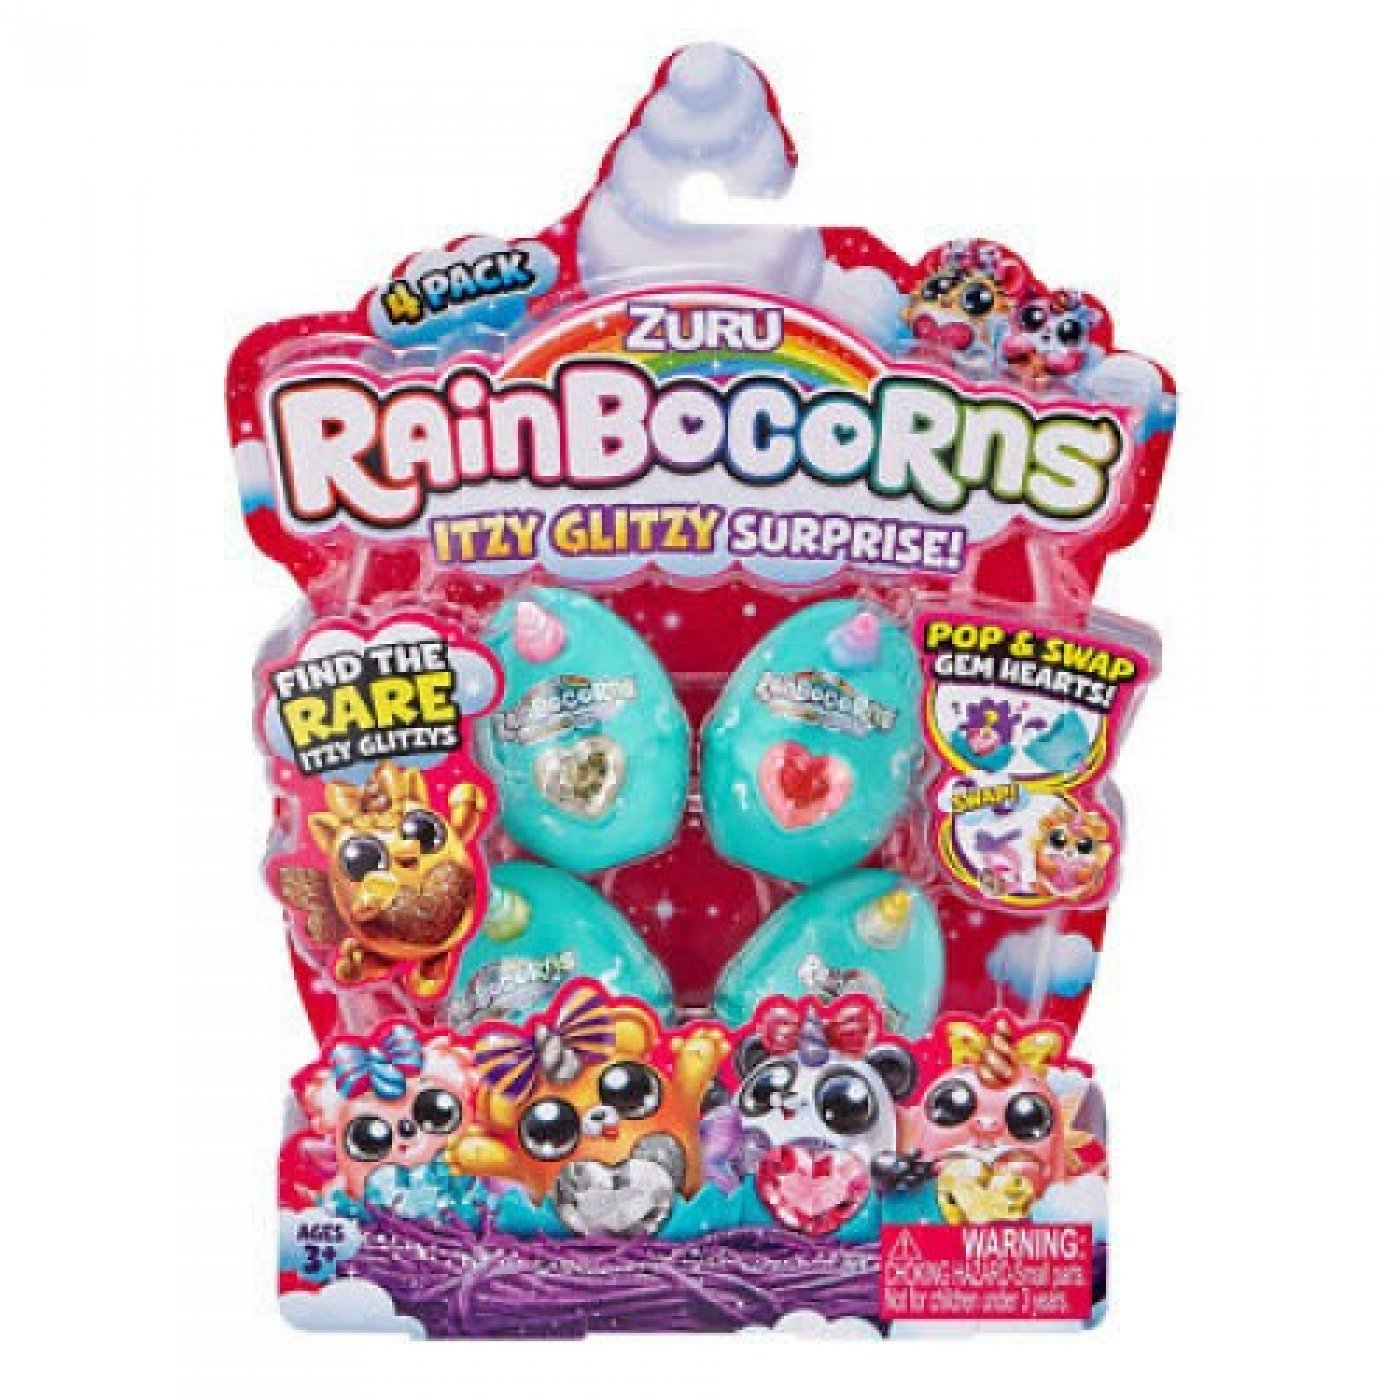 Rainbocorns Itzy Glitzy Surprise x 4